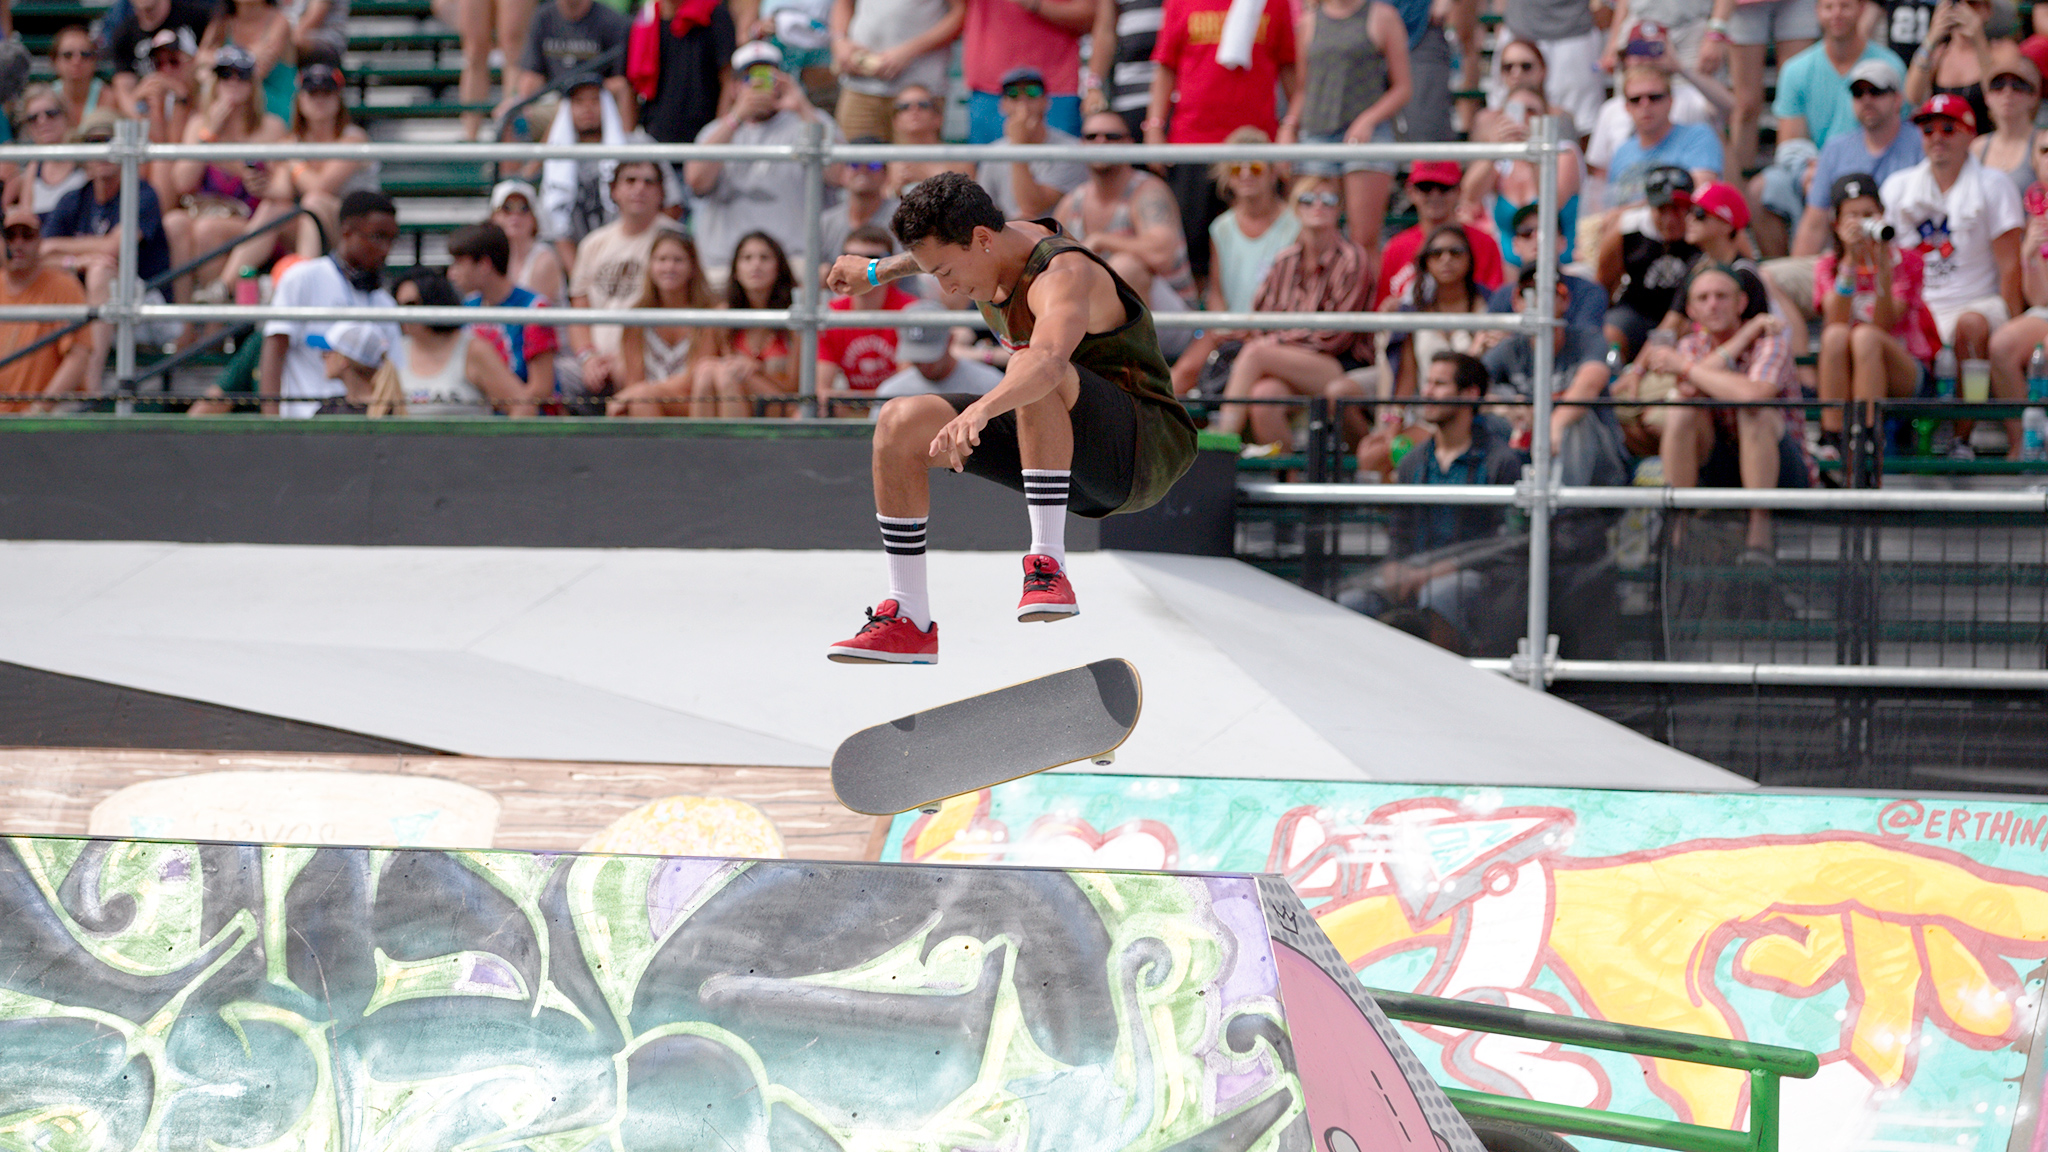 Nyjah Huston competes in Men's Skateboard Street at X Games Austin, where he won his sixth X Games gold medal. Huston is due in court on Thursday on a noise violation charge.